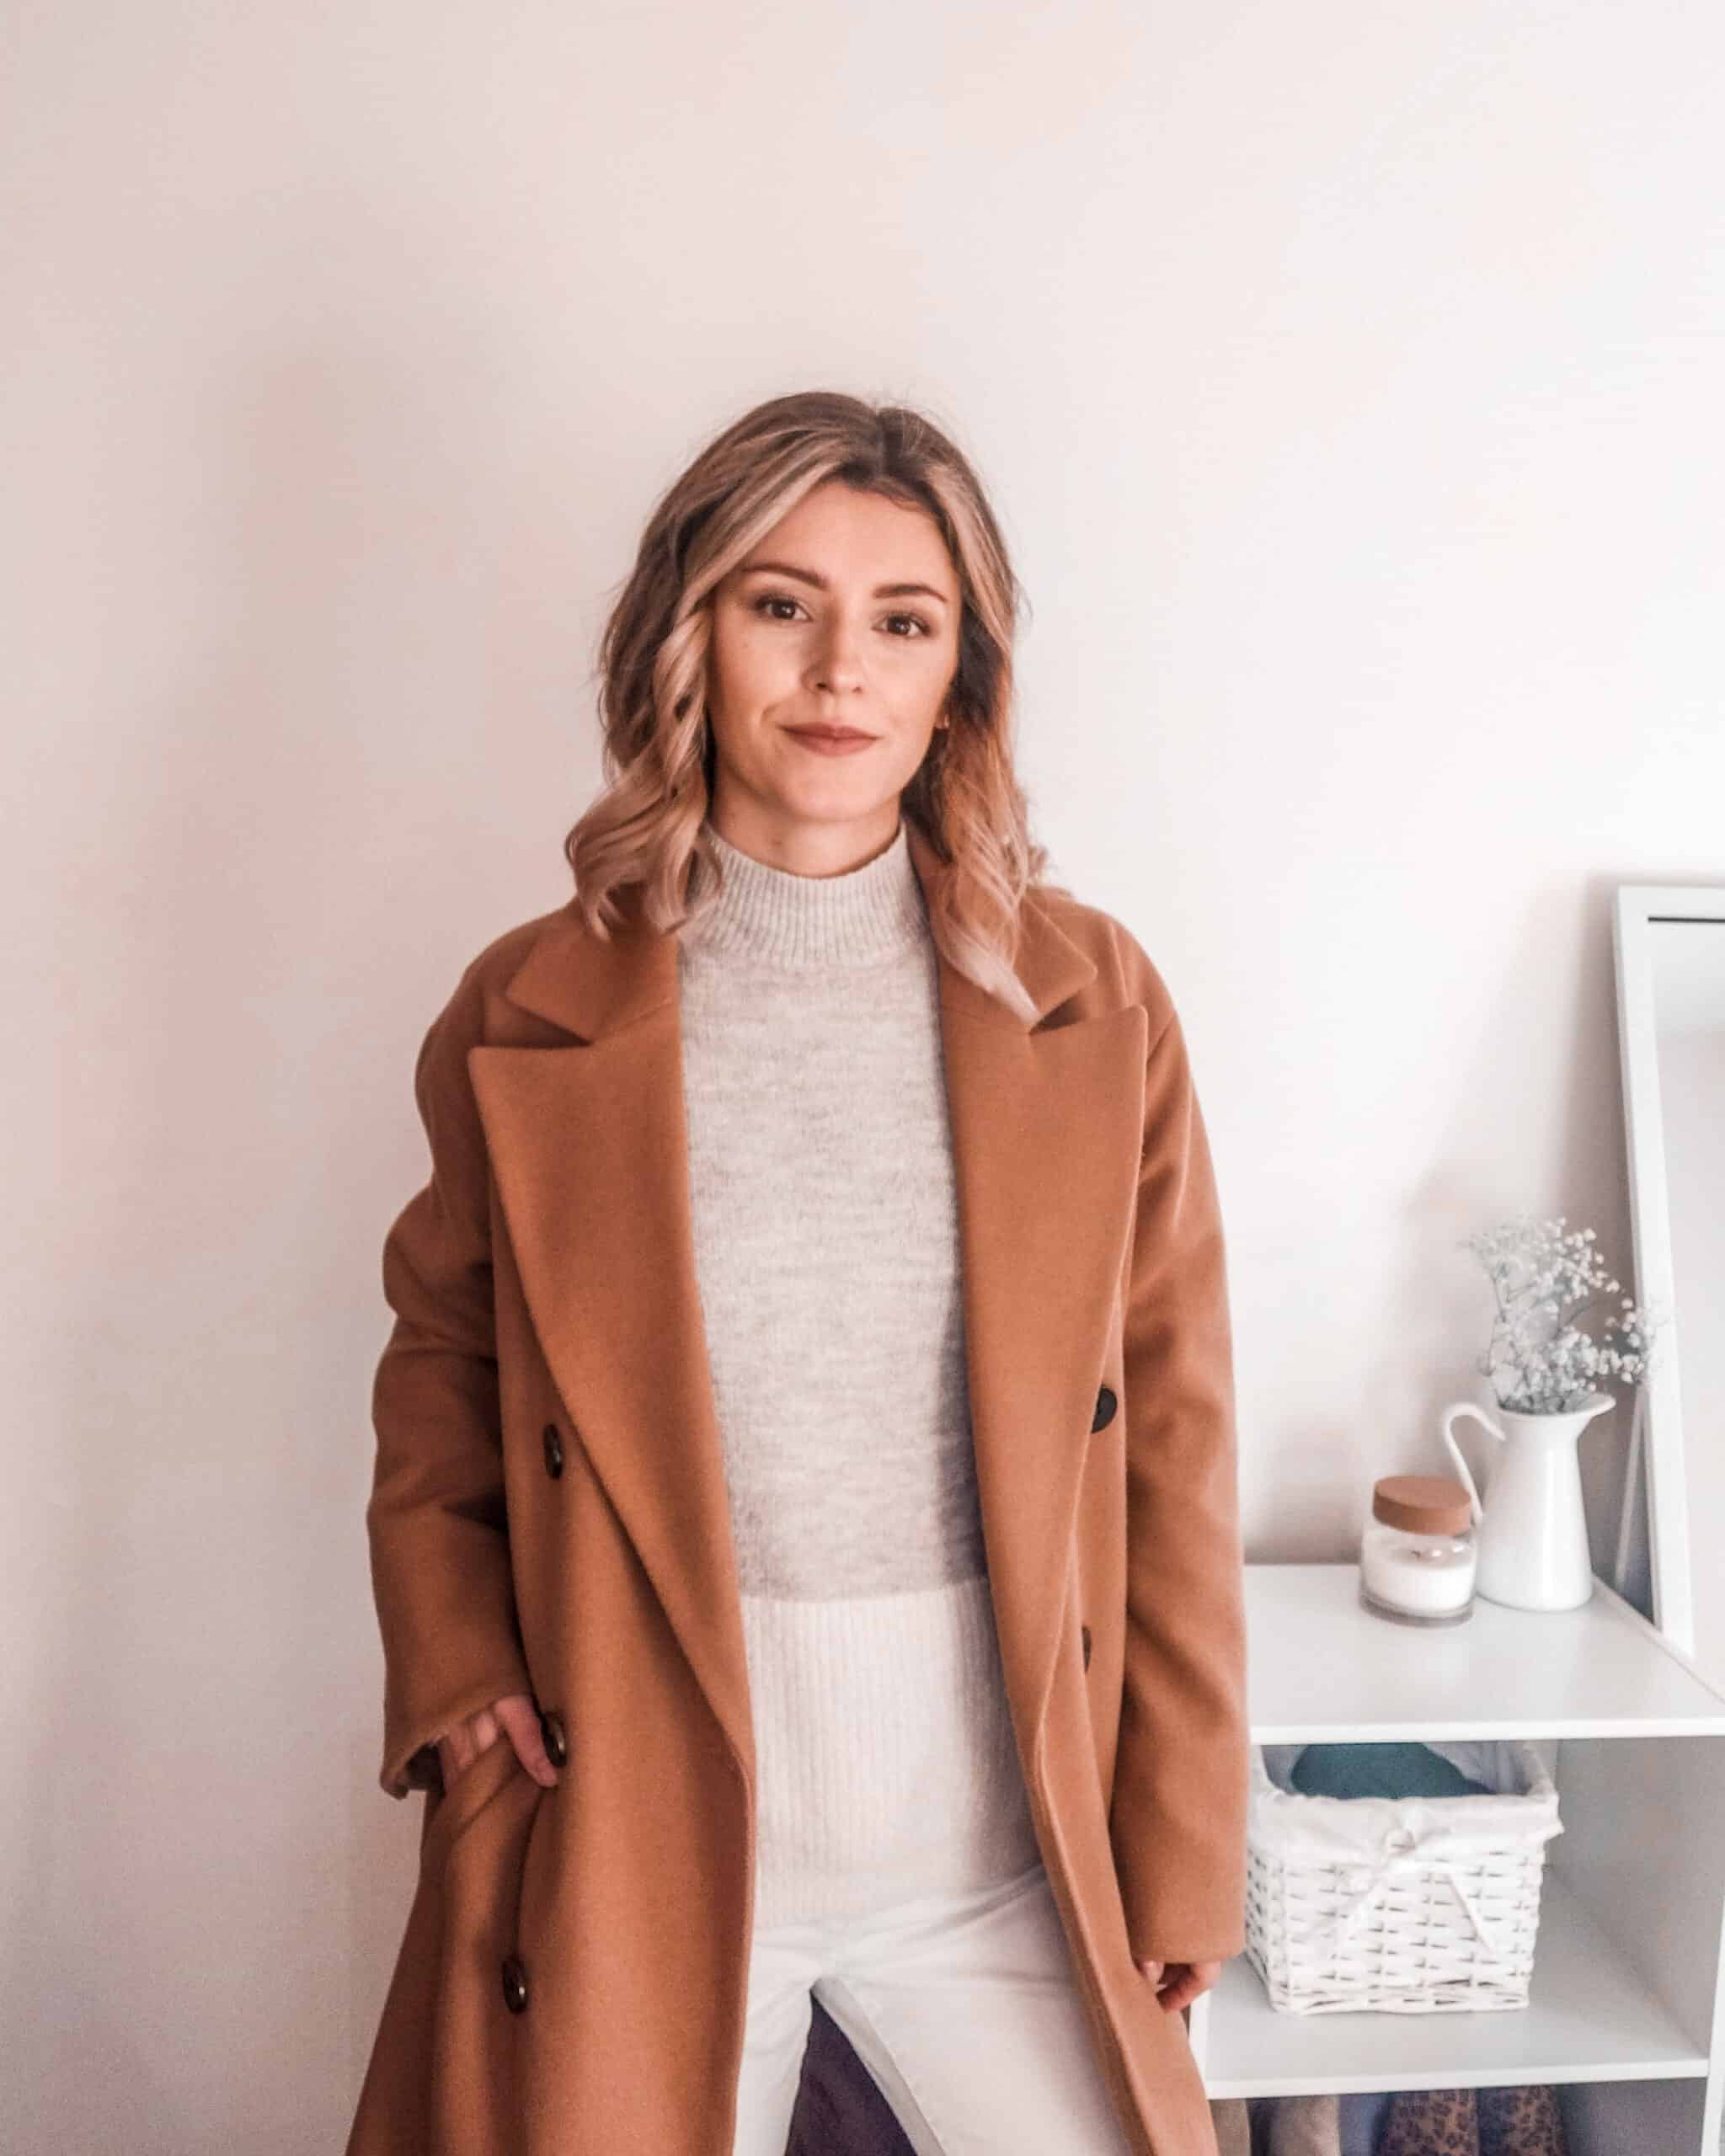 camel coat outfit for fall winter fashion primark